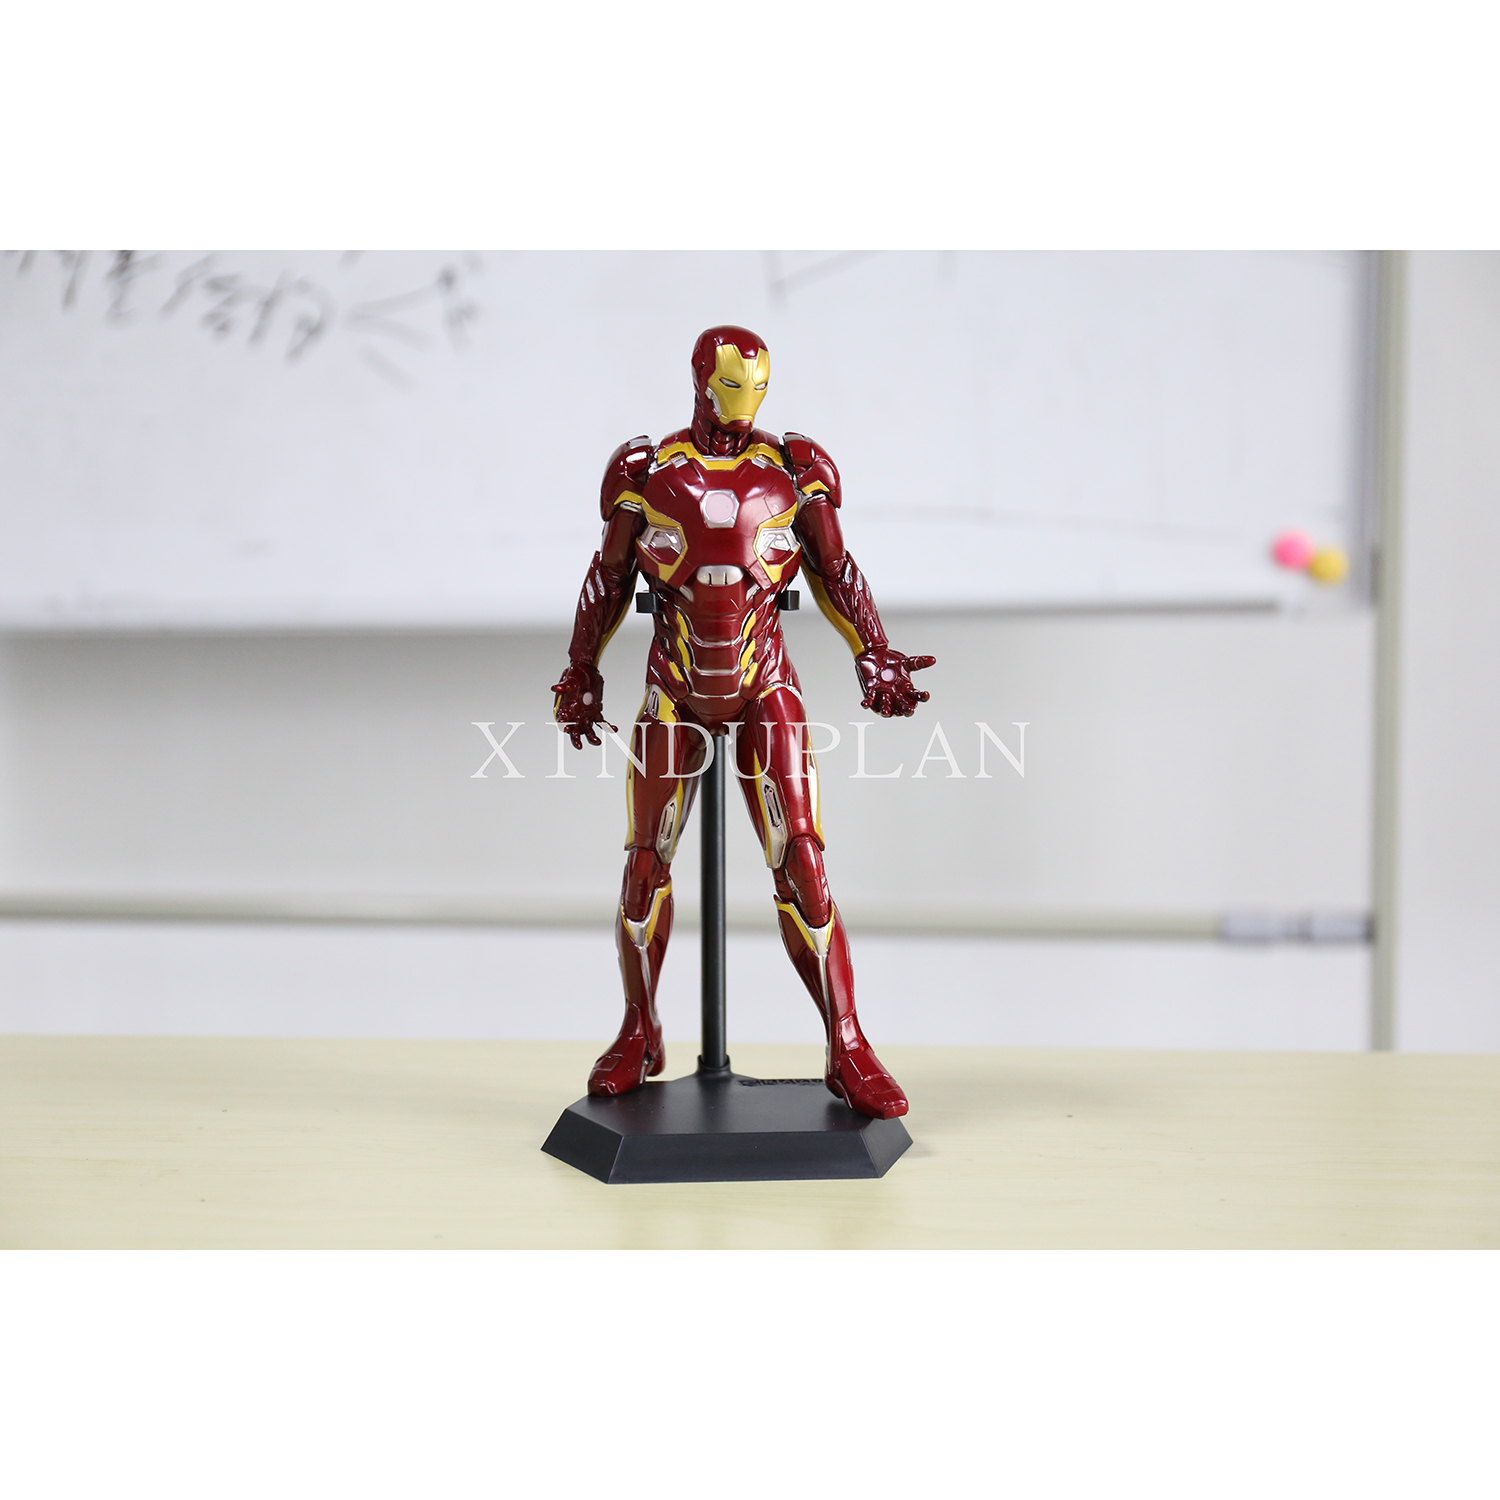 XINDUPLAN Marvel Shield iron Man Avengers Age of Ultron MK45 Light Movable Action Figure Toys 30cm Collection Model 0777 gonlei spiderman marvel avengers 2 age of ultron hulk black widow vision ultron captain america action figures model toys